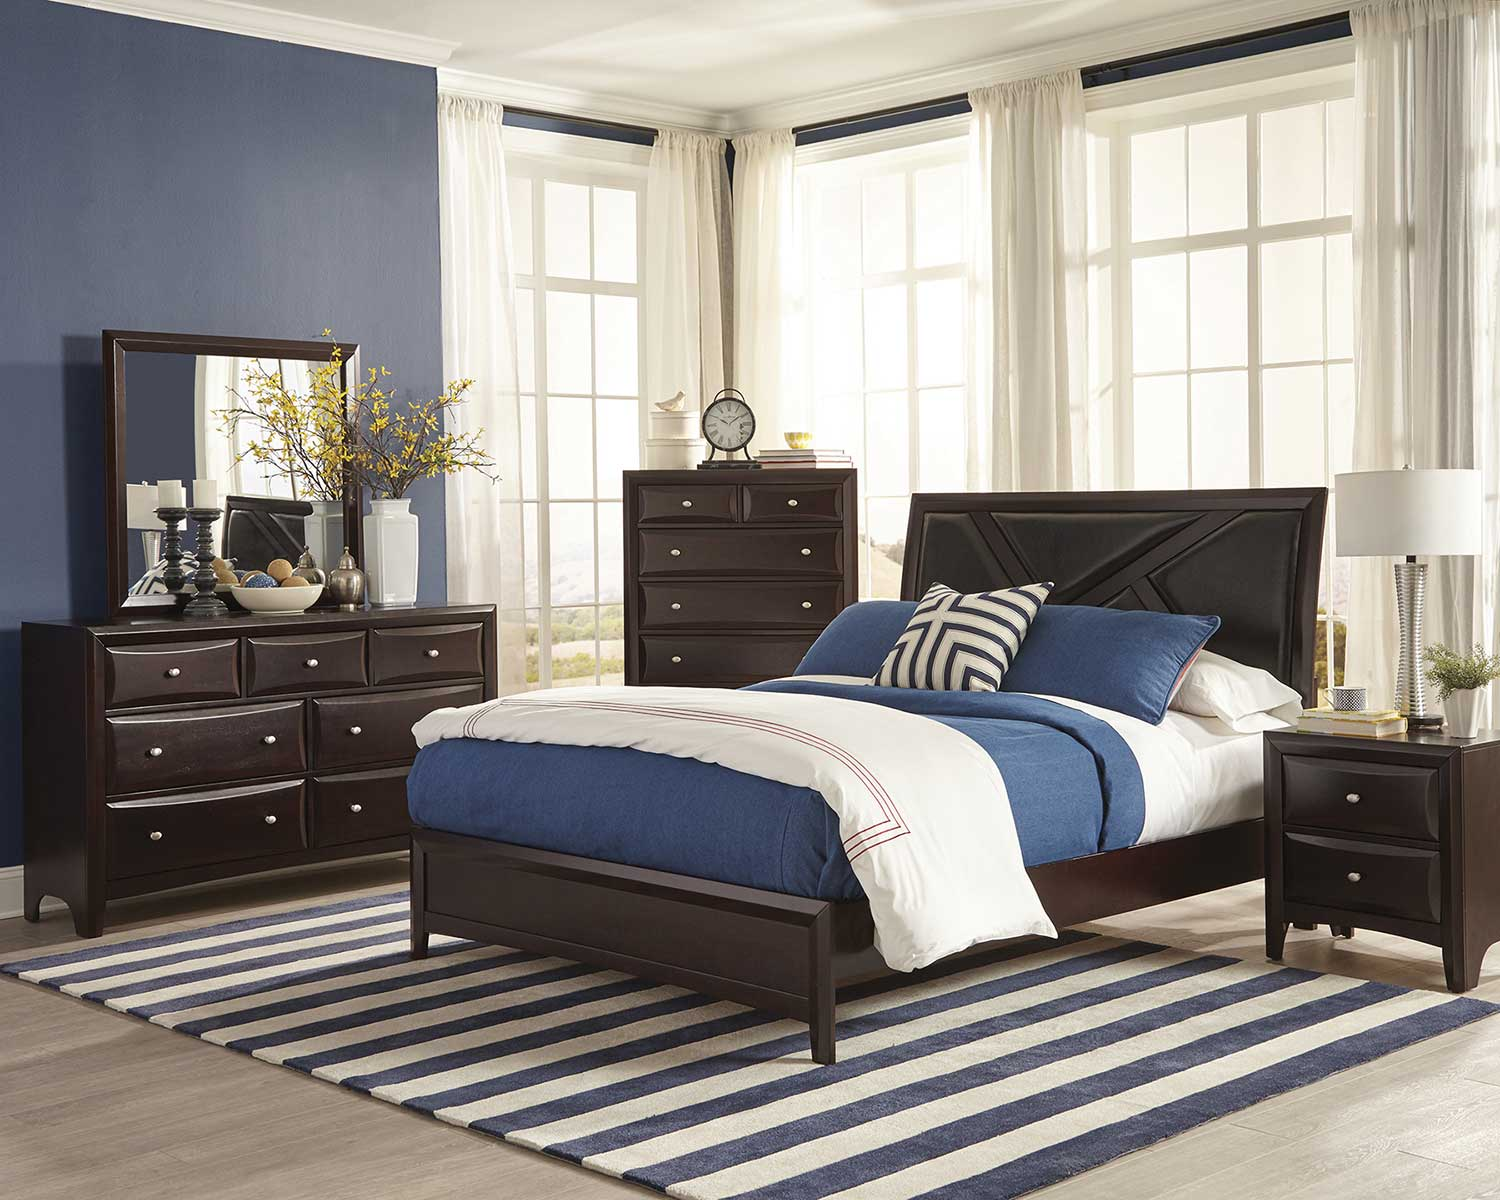 Coaster Rossville Upholstered Bedroom Set - Cappuccino